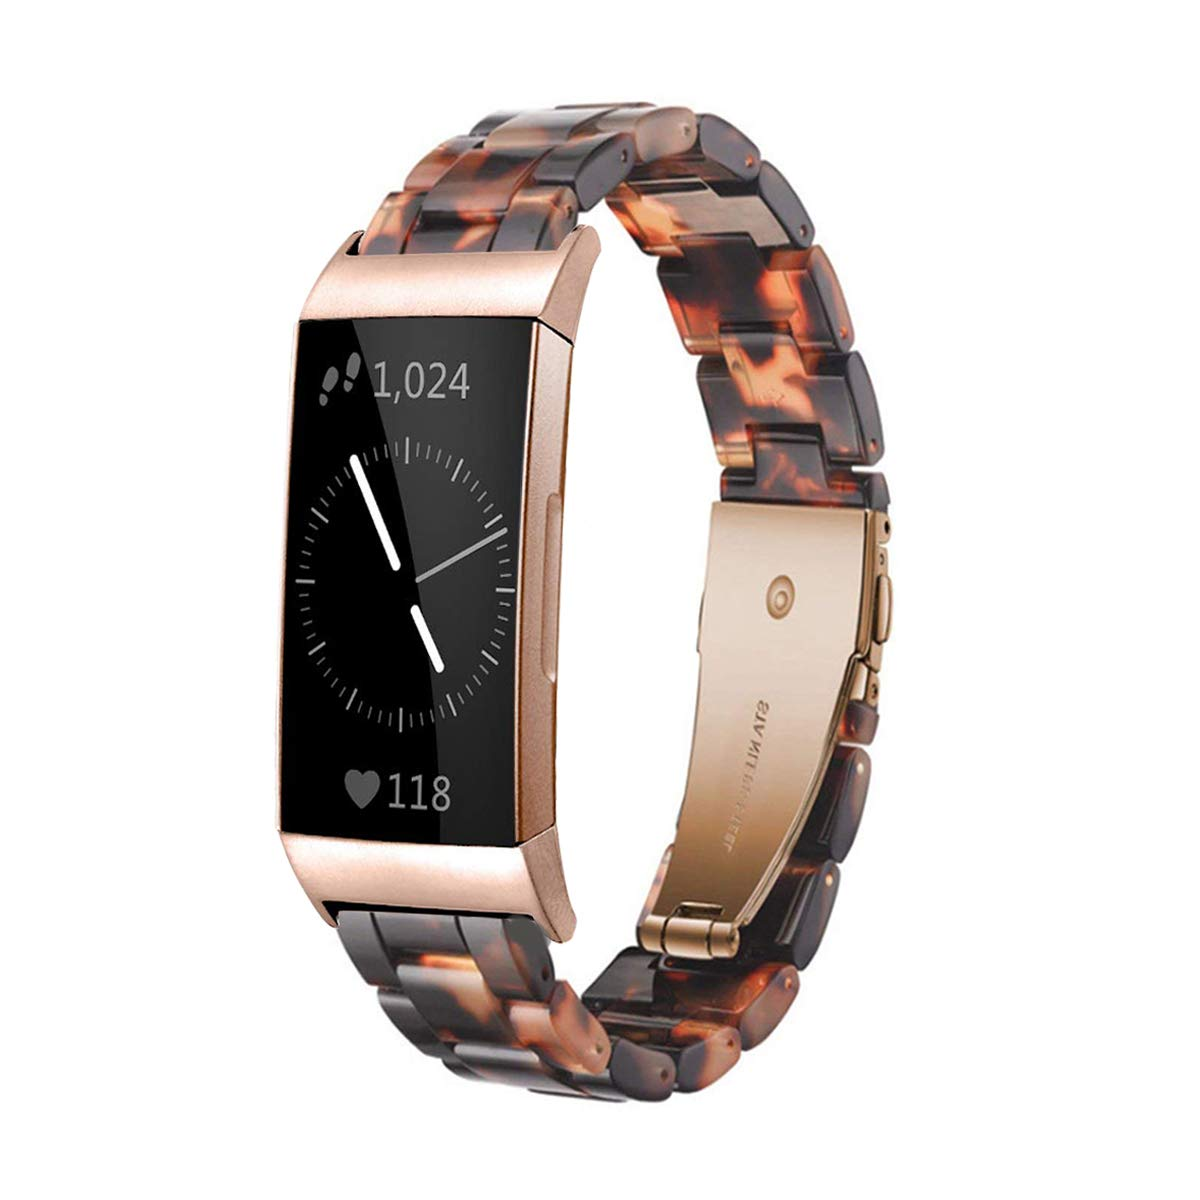 Ayeger Resin Band Compatible with Fitbit Charge 3/3 SE,Women Men Resin Accessory Rose Gold Buckle Band Wristband Strap Blacelet for Fitbit Charge 3/3 SE Smart Watch Fitness(Tortoise) by Ayeger